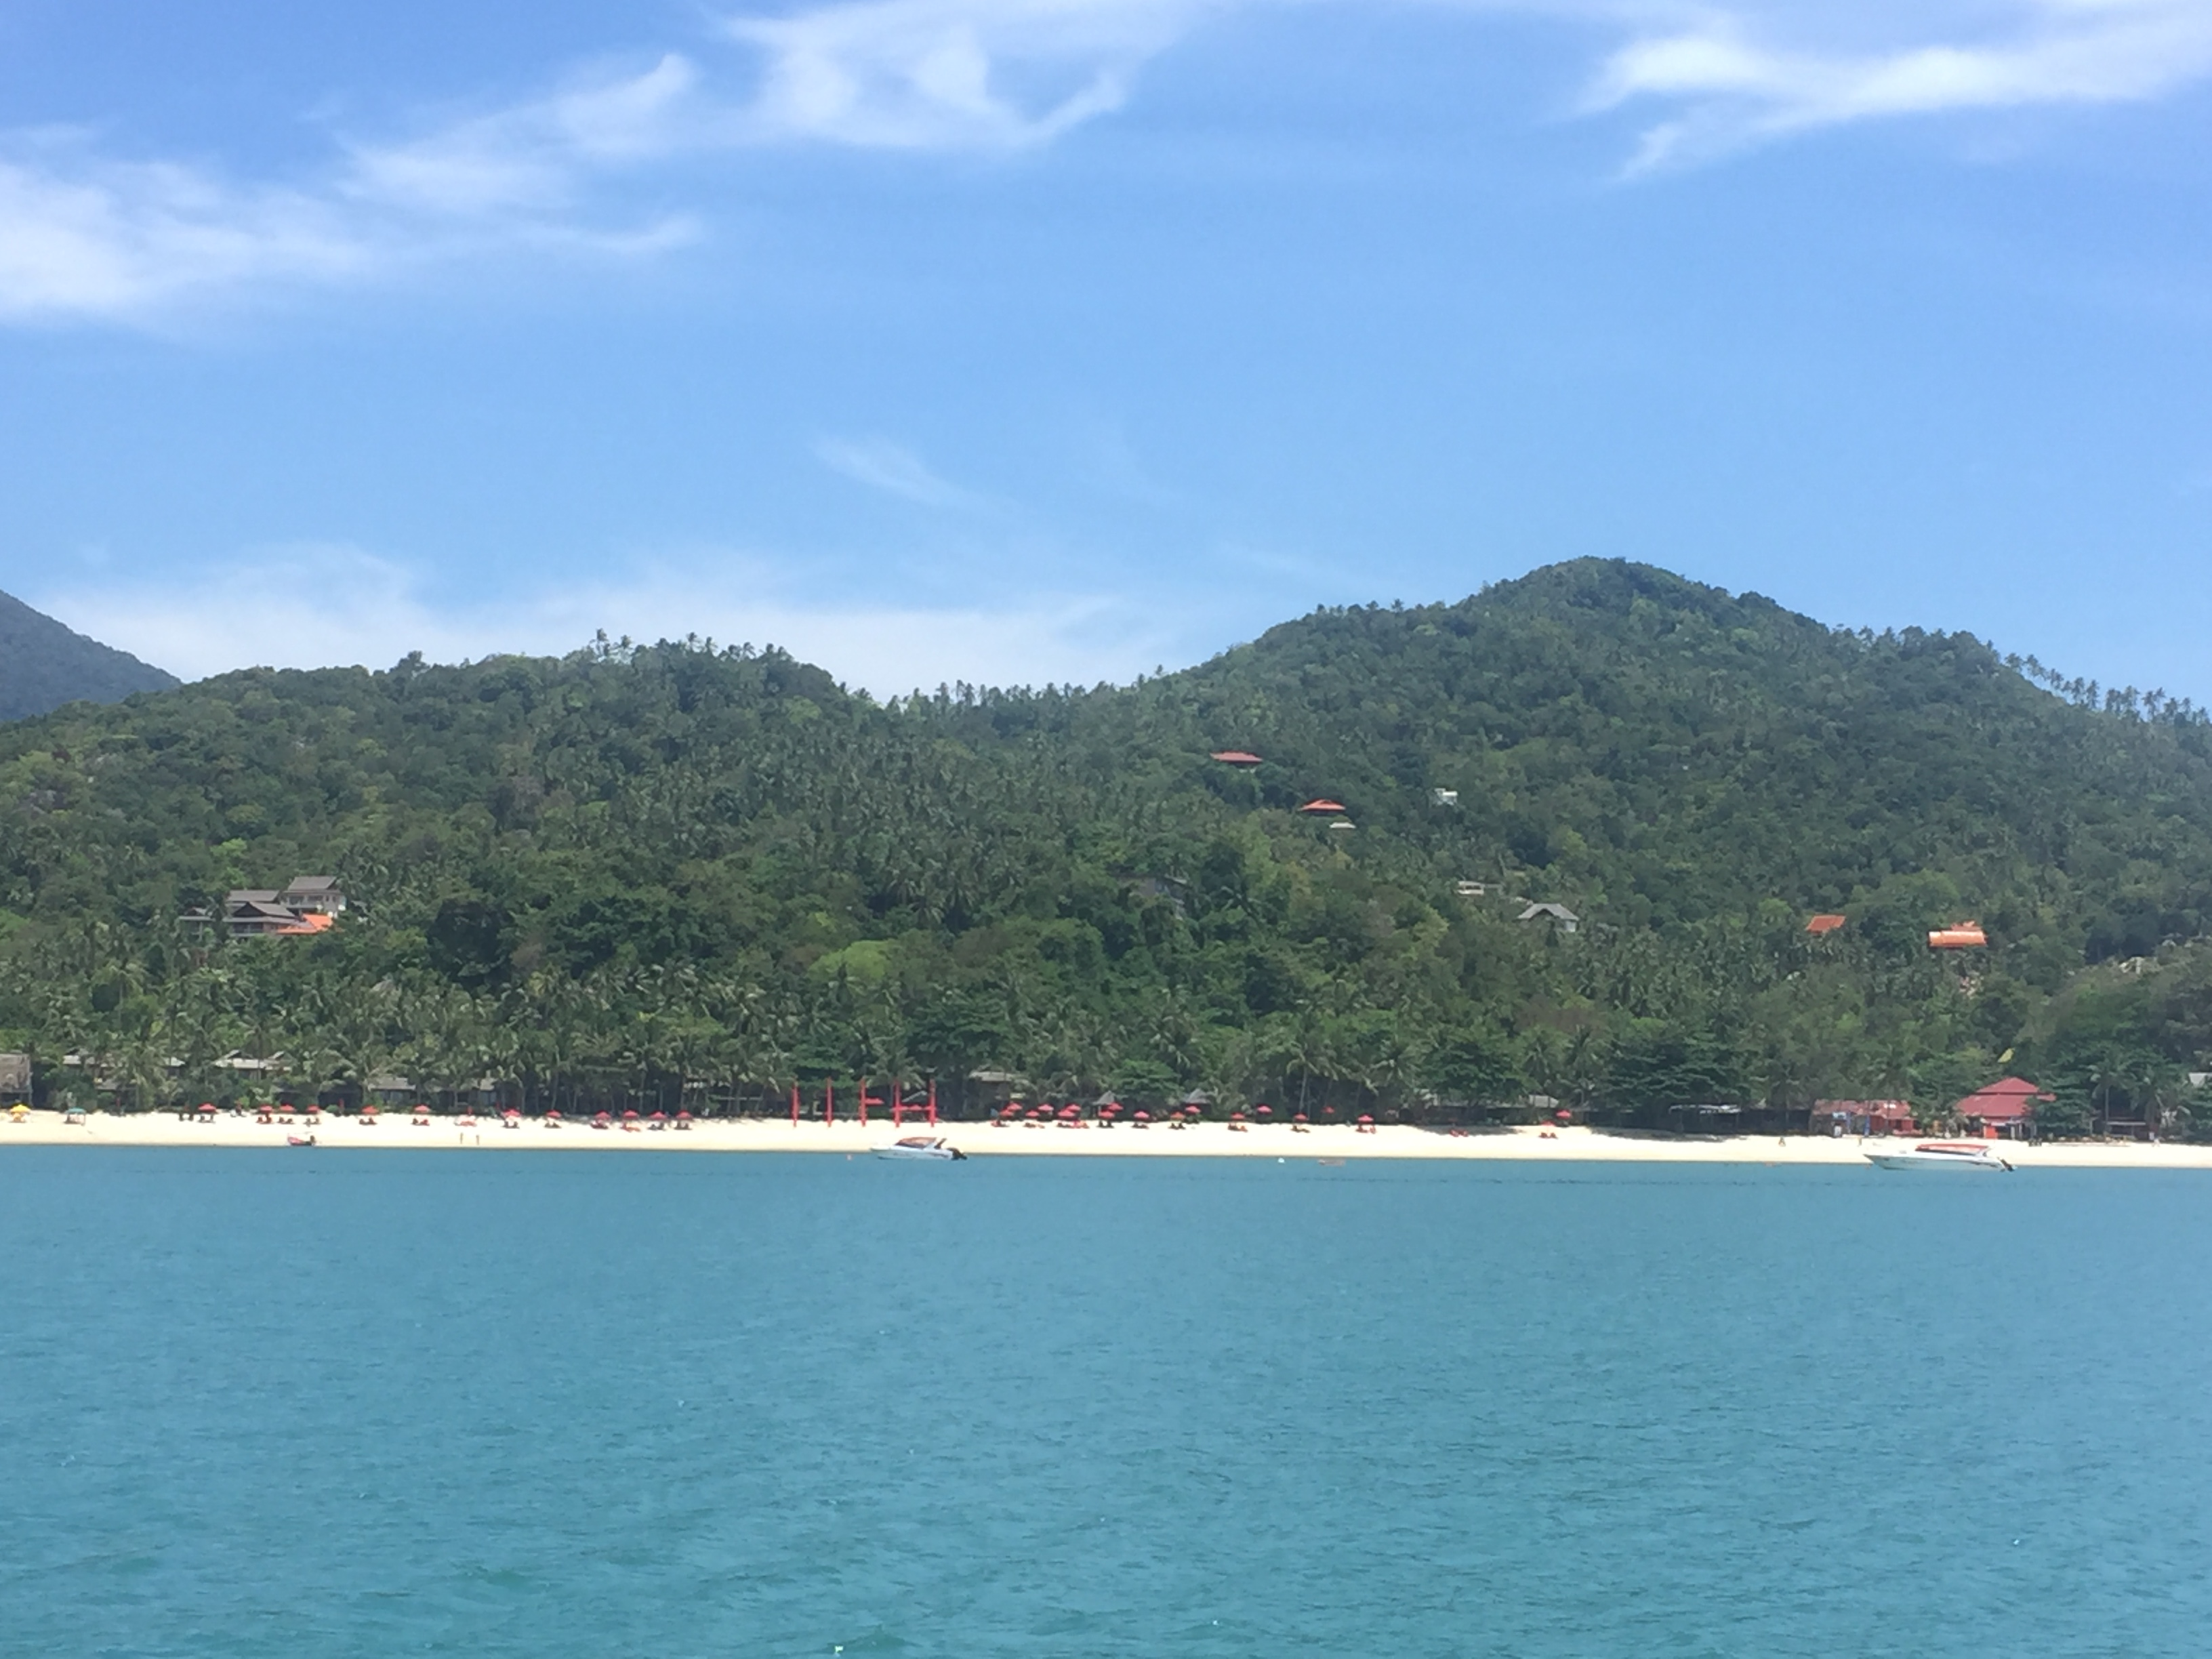 Thong Nai Pan Bay from the ocean